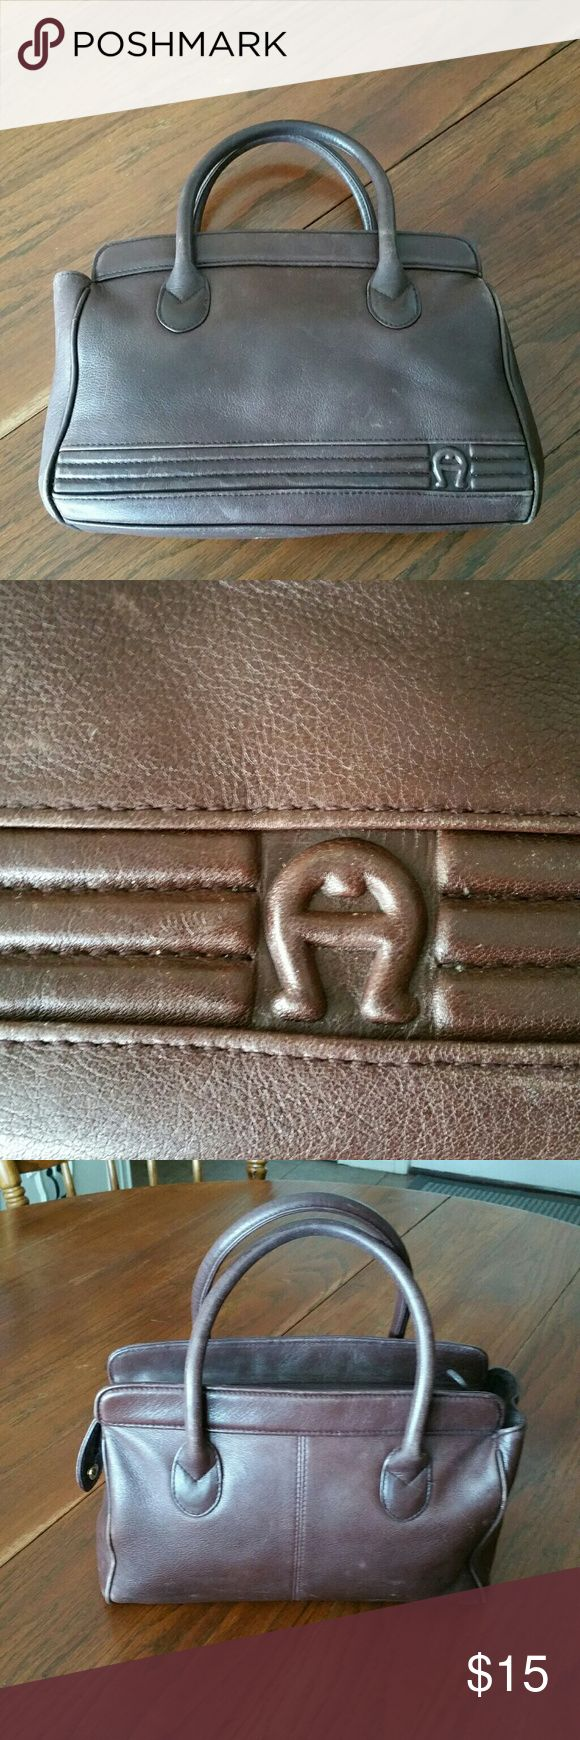 Etienne Aigner Vintage soft Leather satchel Good condition,  genuine leather handbag by Etienne Aigner. Measures about 12 x 8 x 4 with handle drop of 4 inches. Super soft leather. Etienne Aigner Bags